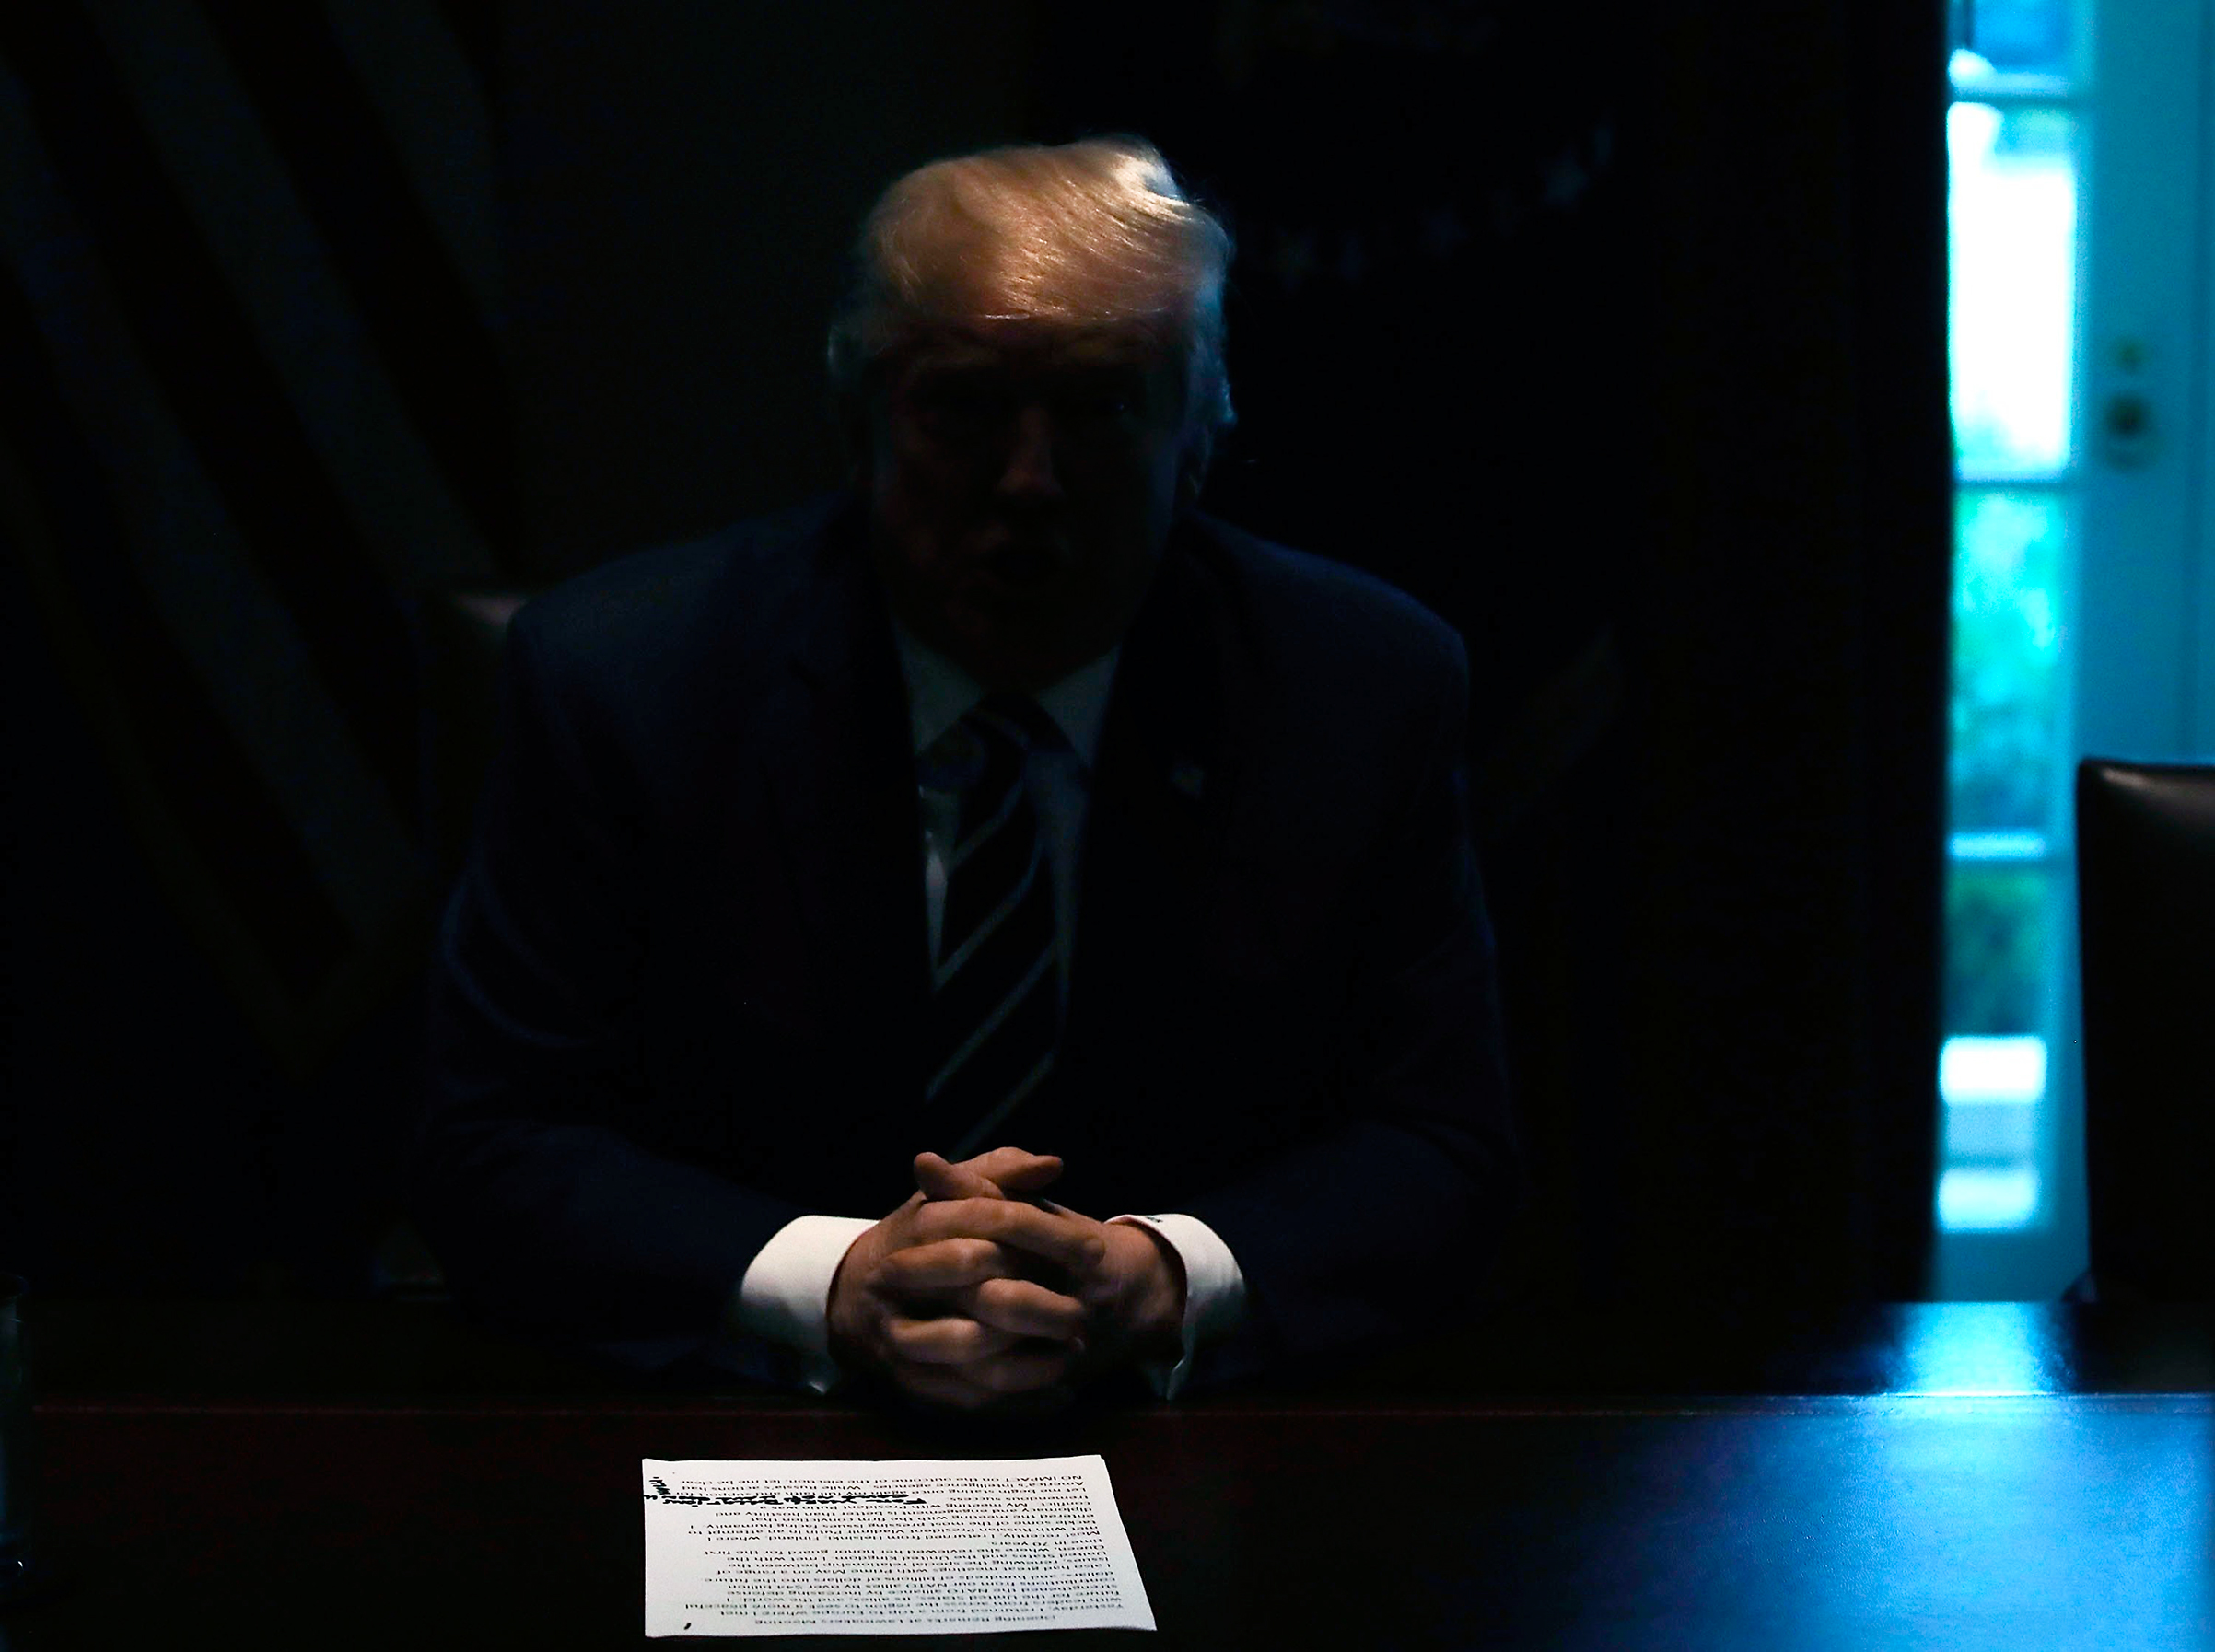 The lights in the White House CabinetRoom went dark on July 17 as Trump addressed criticism of his failure toconfront Vladimir Putin in Helsinki